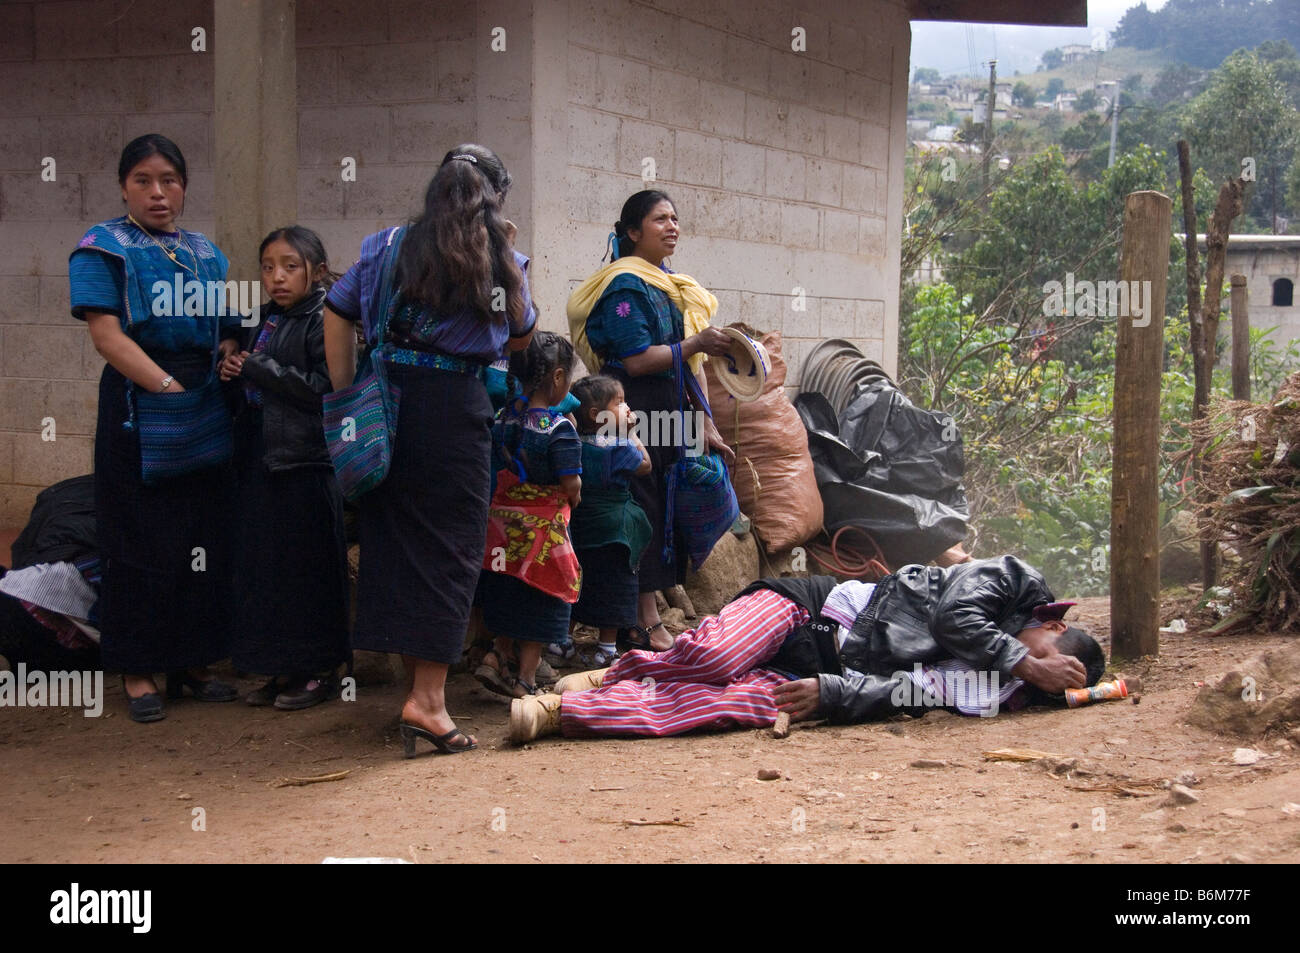 Boozer lays on the ground in front of his female family members.Annual festival (Oct 31-Nov 2) Todos Santos Cuchumatan,Guatemala - Stock Image